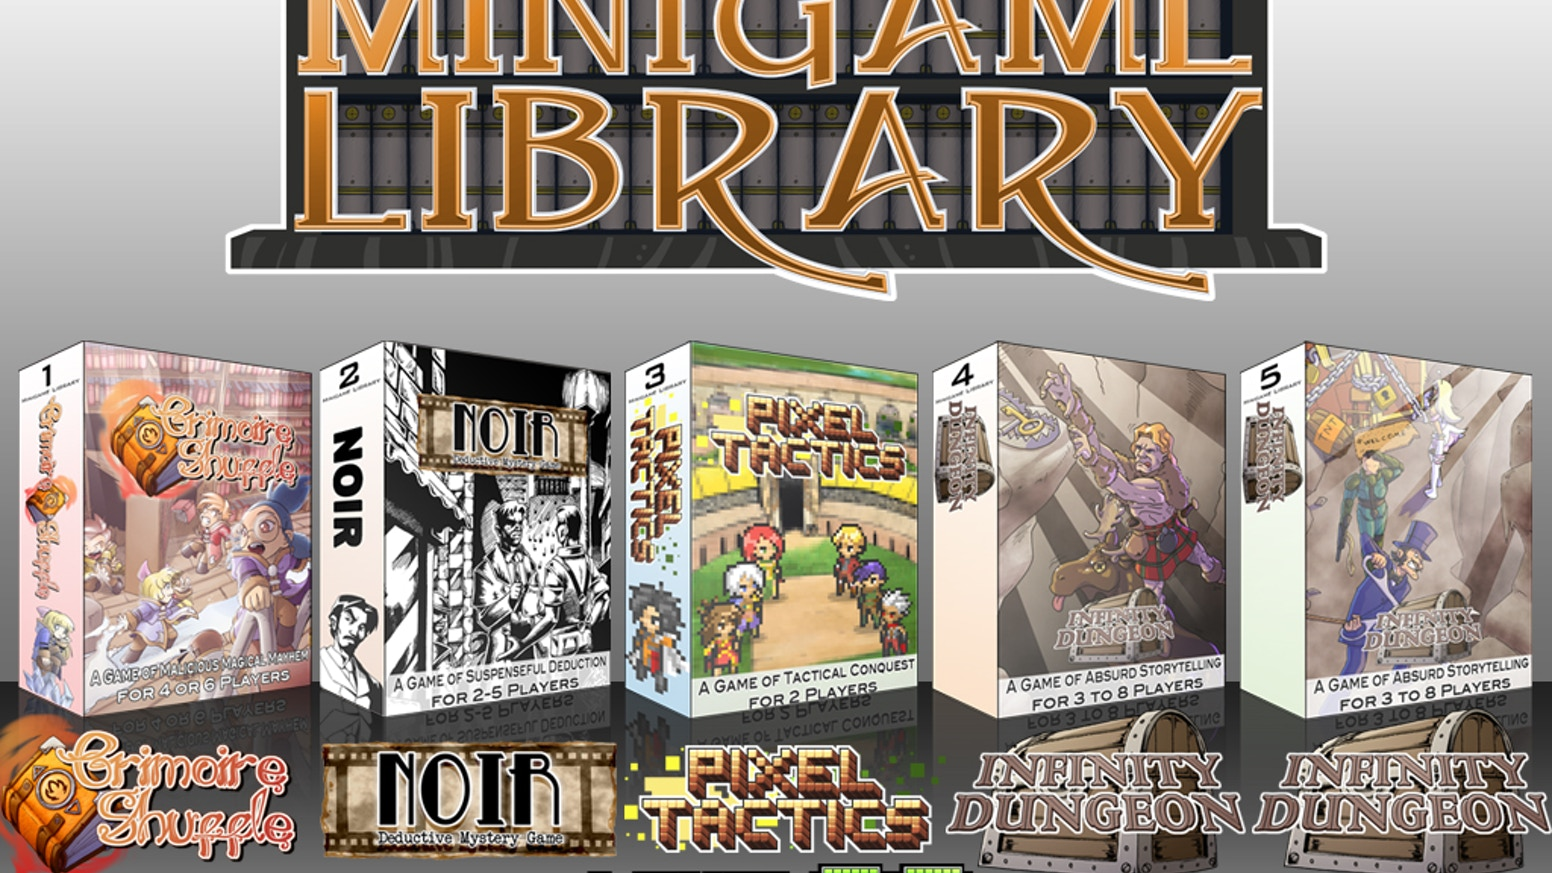 Five brand new games, each able to fit in your pocket and each for a different occasion. Mystery, Tactics, Puzzle, and Storytelling!